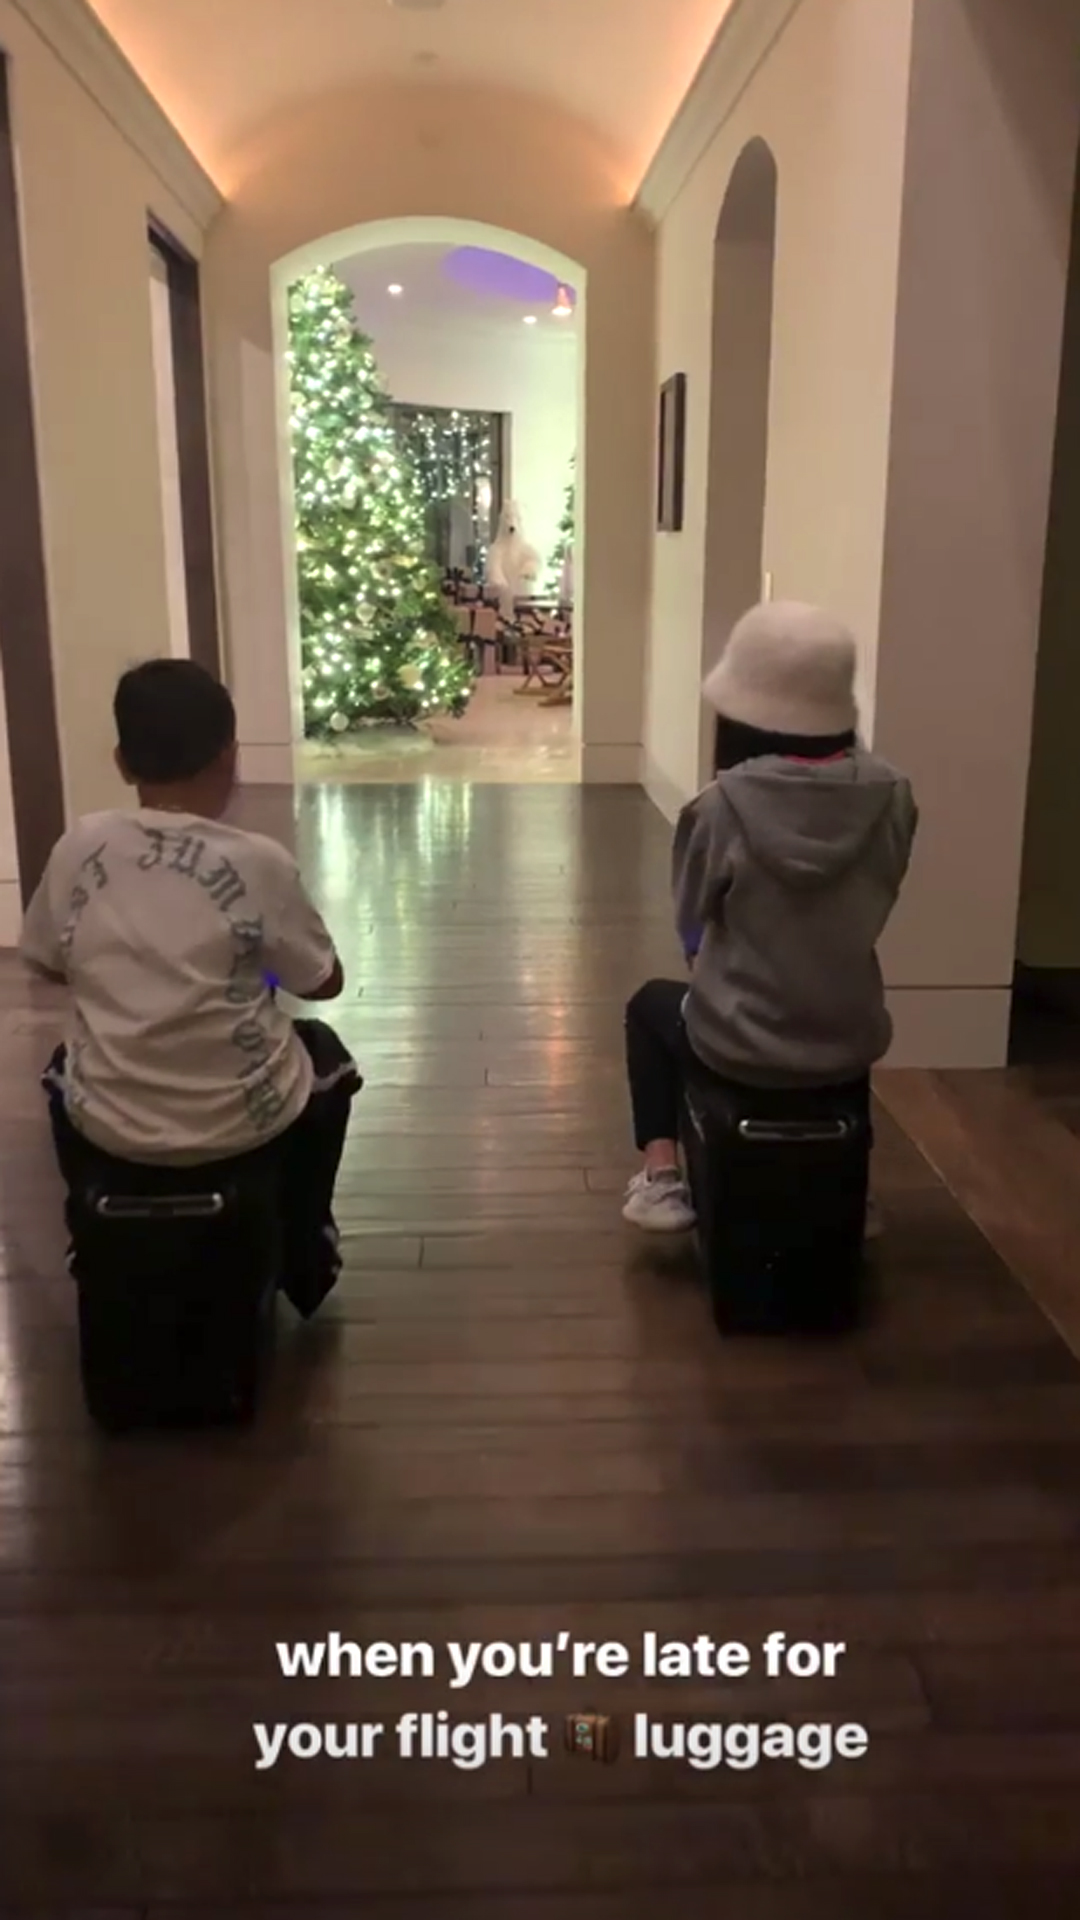 Kourtney Throws Sons a Fortnite-Themed Birthday Party - Mason showed off his new roller luggage that doubles as a form of transportation!